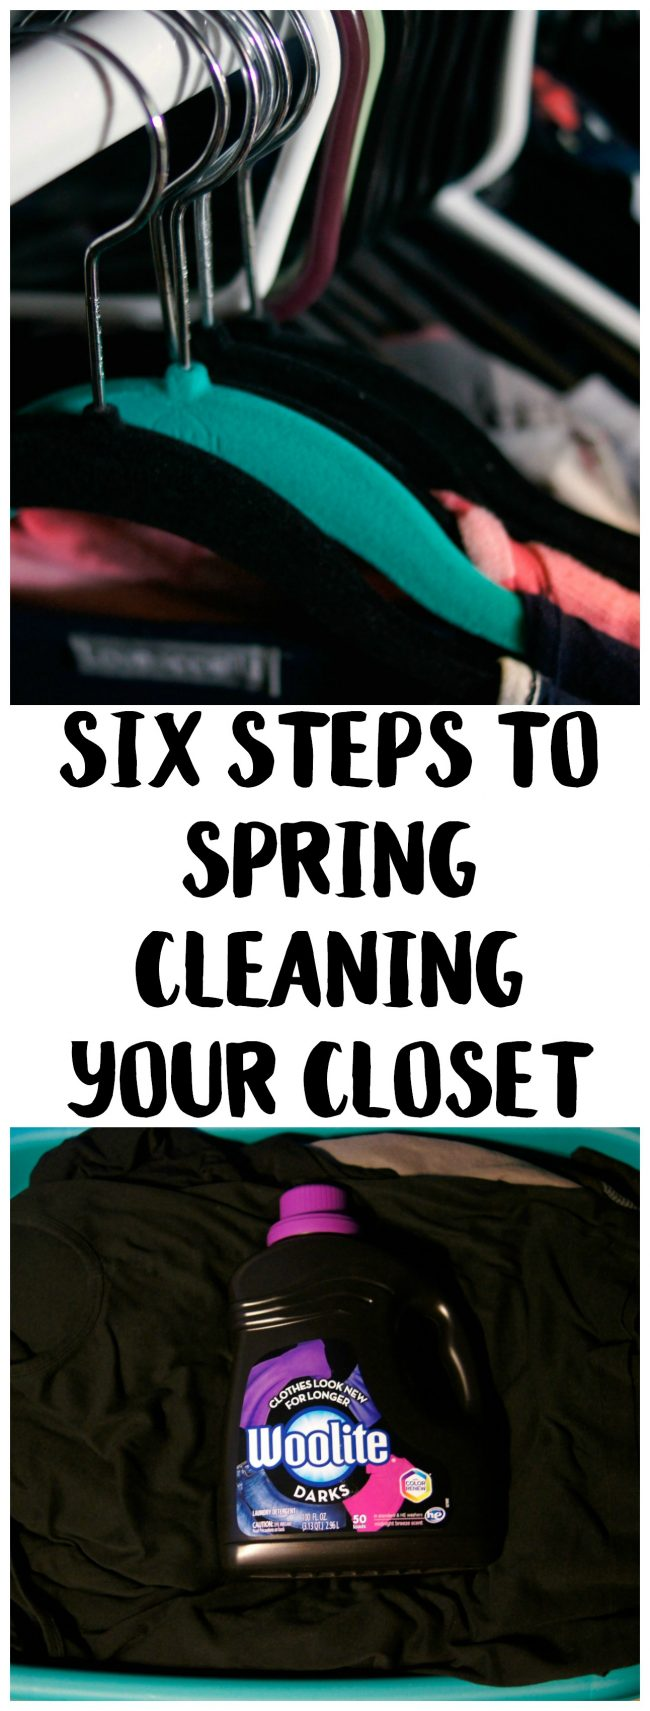 Who else loves when it's time to pull out the warm weather clothes? This year, grab your favorite summer styles and get some bedroom closet organization done at the same time! Learn how to tackle spring cleaning with this list of hacks and tips that will help you declutter and have you marking off your printable spring cleaning checklist in no time. Then, learn about the one change to your laundry routine that will keep your favorite jeans looking perfect for a long, long time.